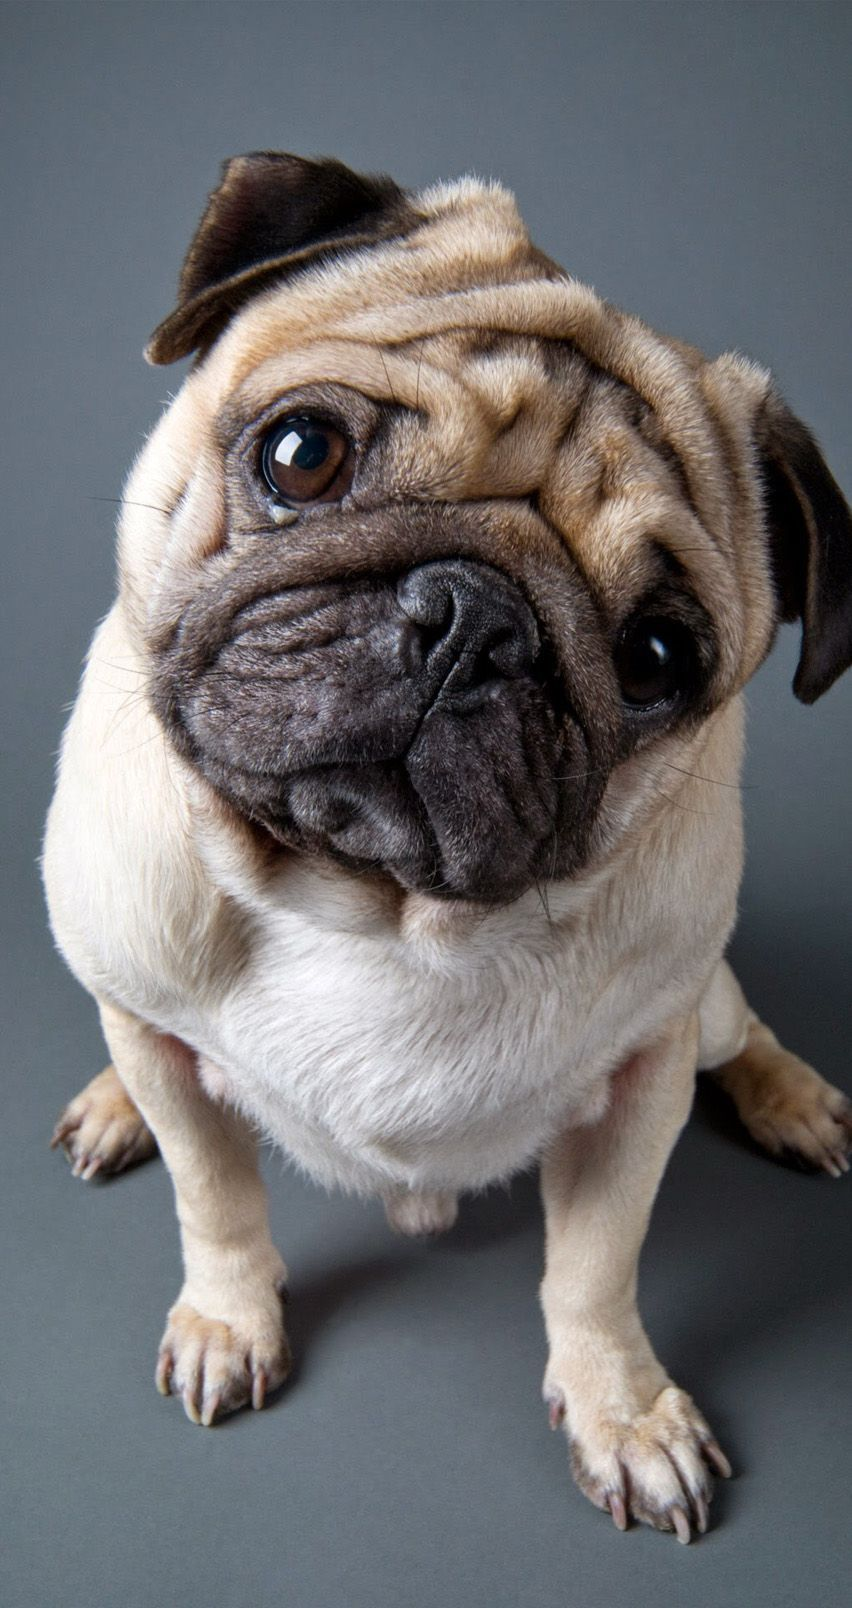 Cute Pug 852 X 1608 Wallpapers Available For Free Download